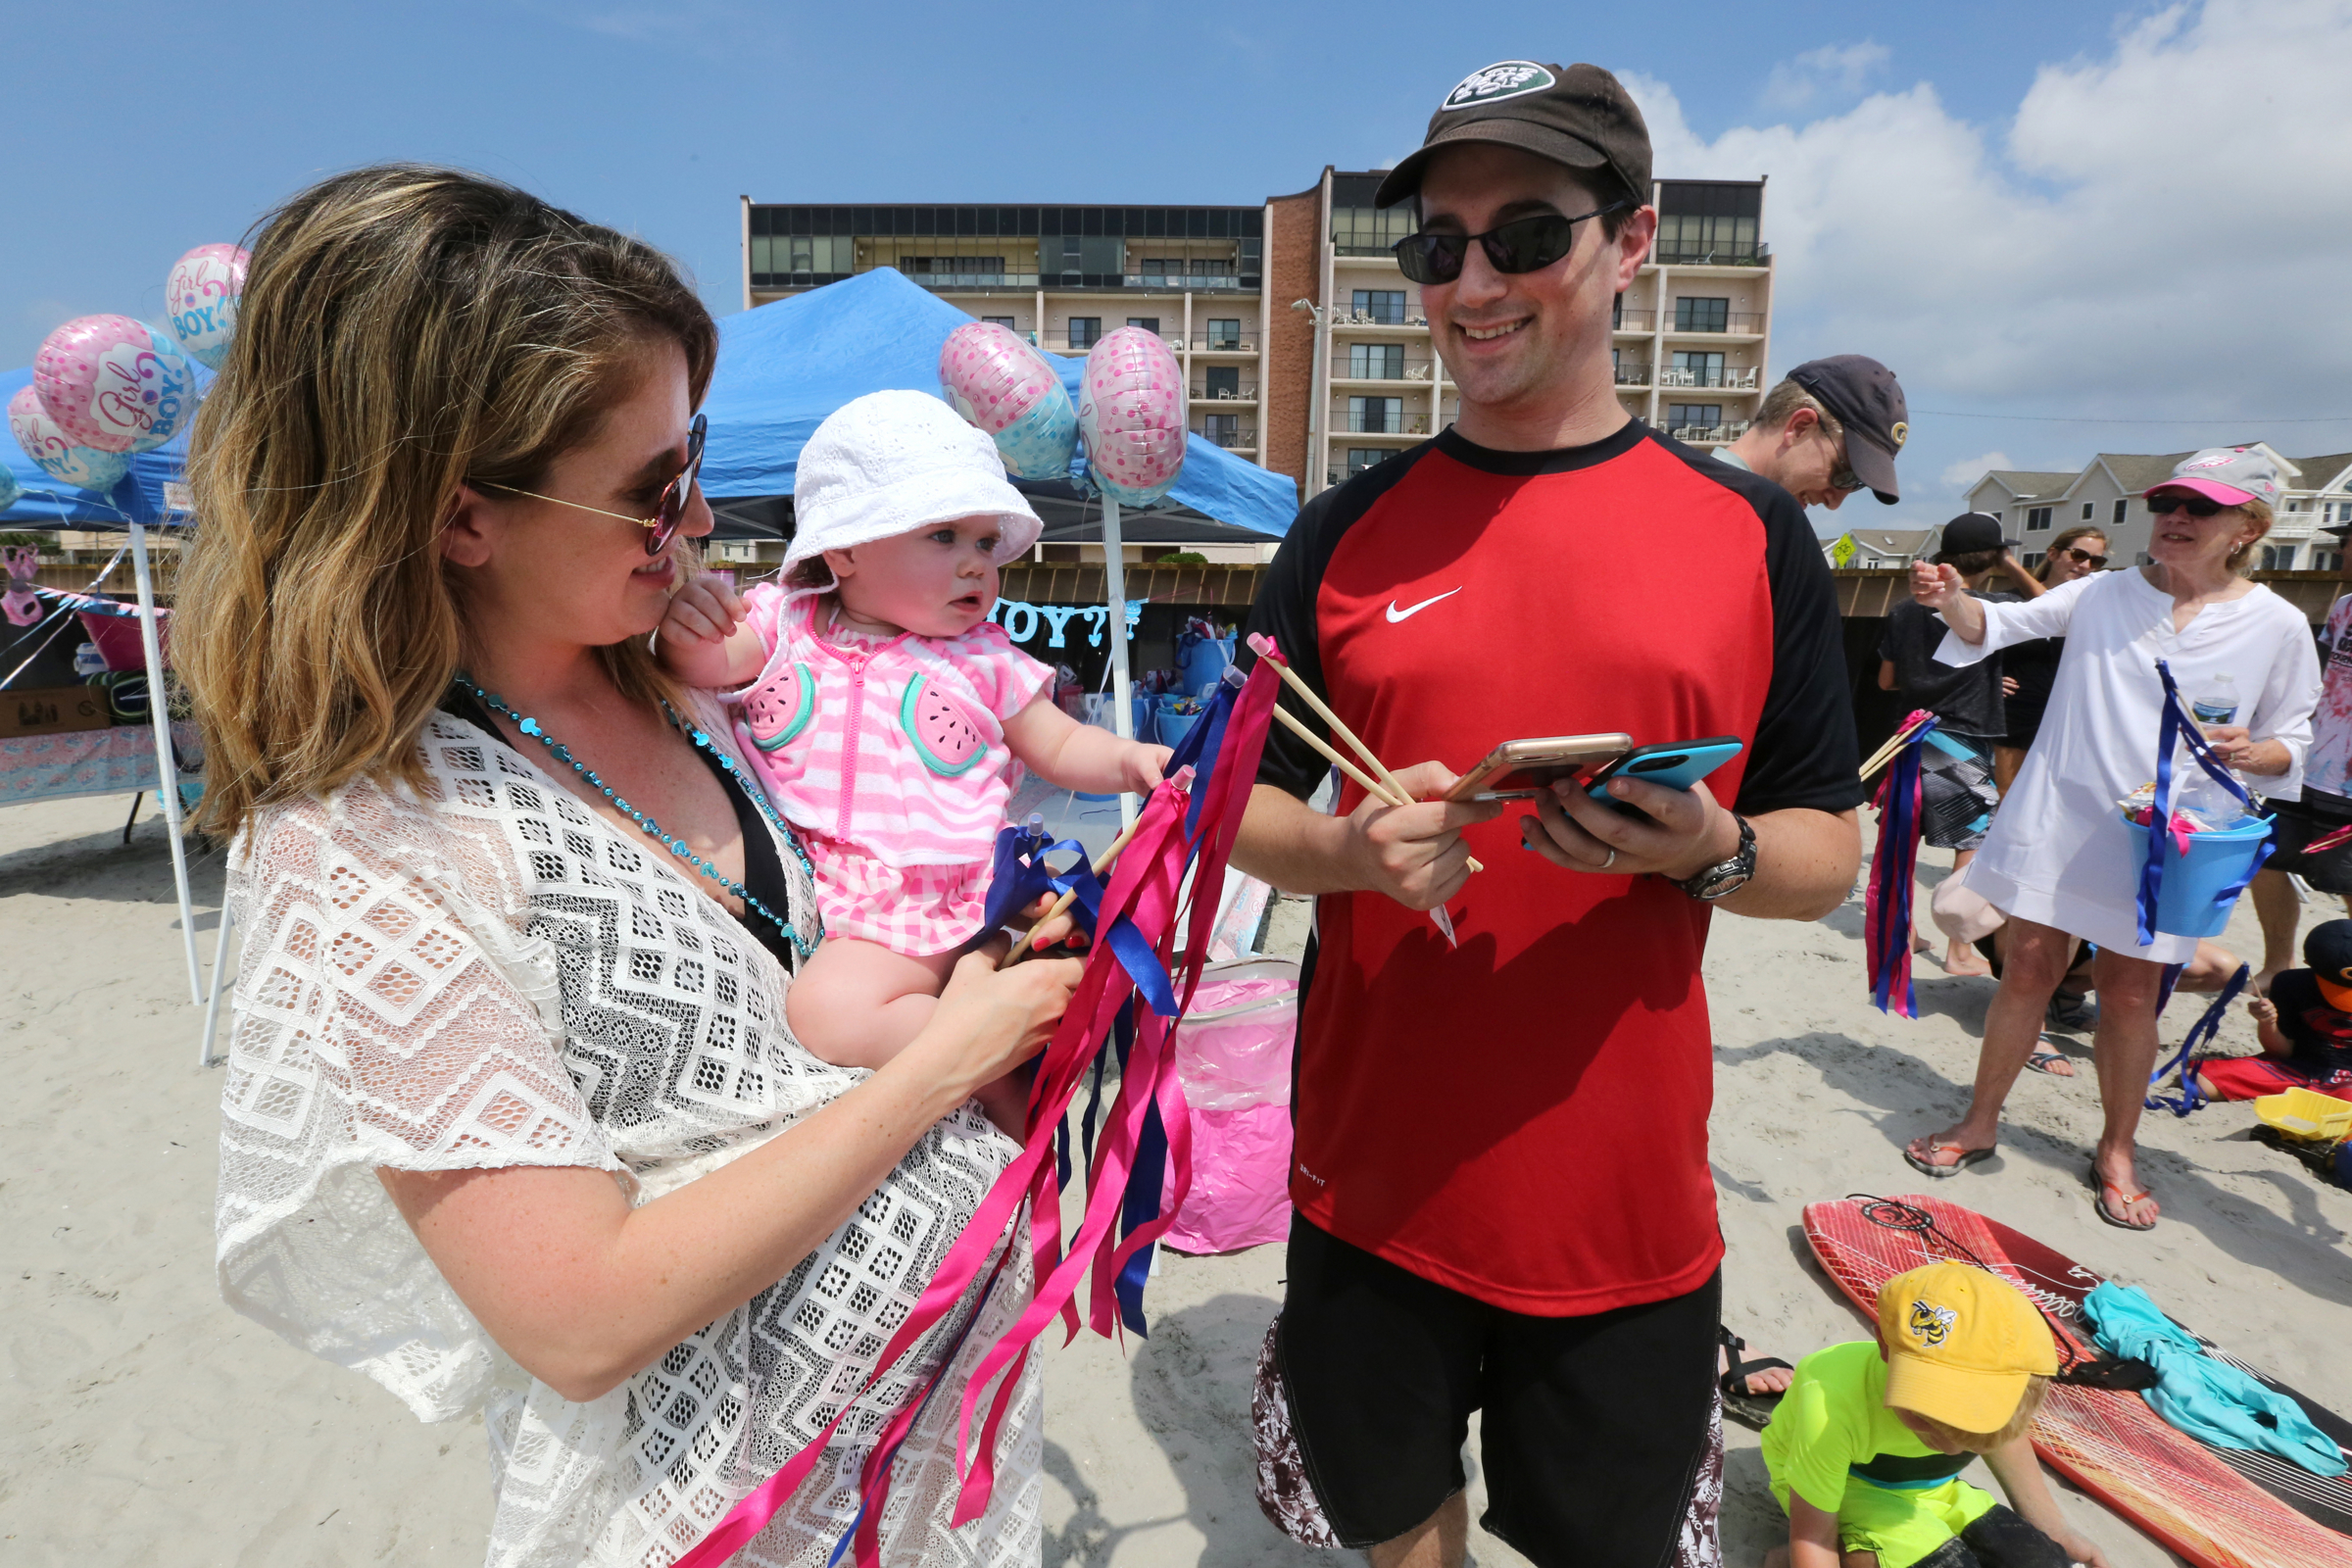 Lauren and Michael Norden, of Robbinsville, with their daughter, Emily, Saturday, July 28, 2018, on the beach off 5th Street, in North Wildwood. Later, a banner plane announced the gender of their expectant baby. Vernon Ogrodnek / For the Inquirer